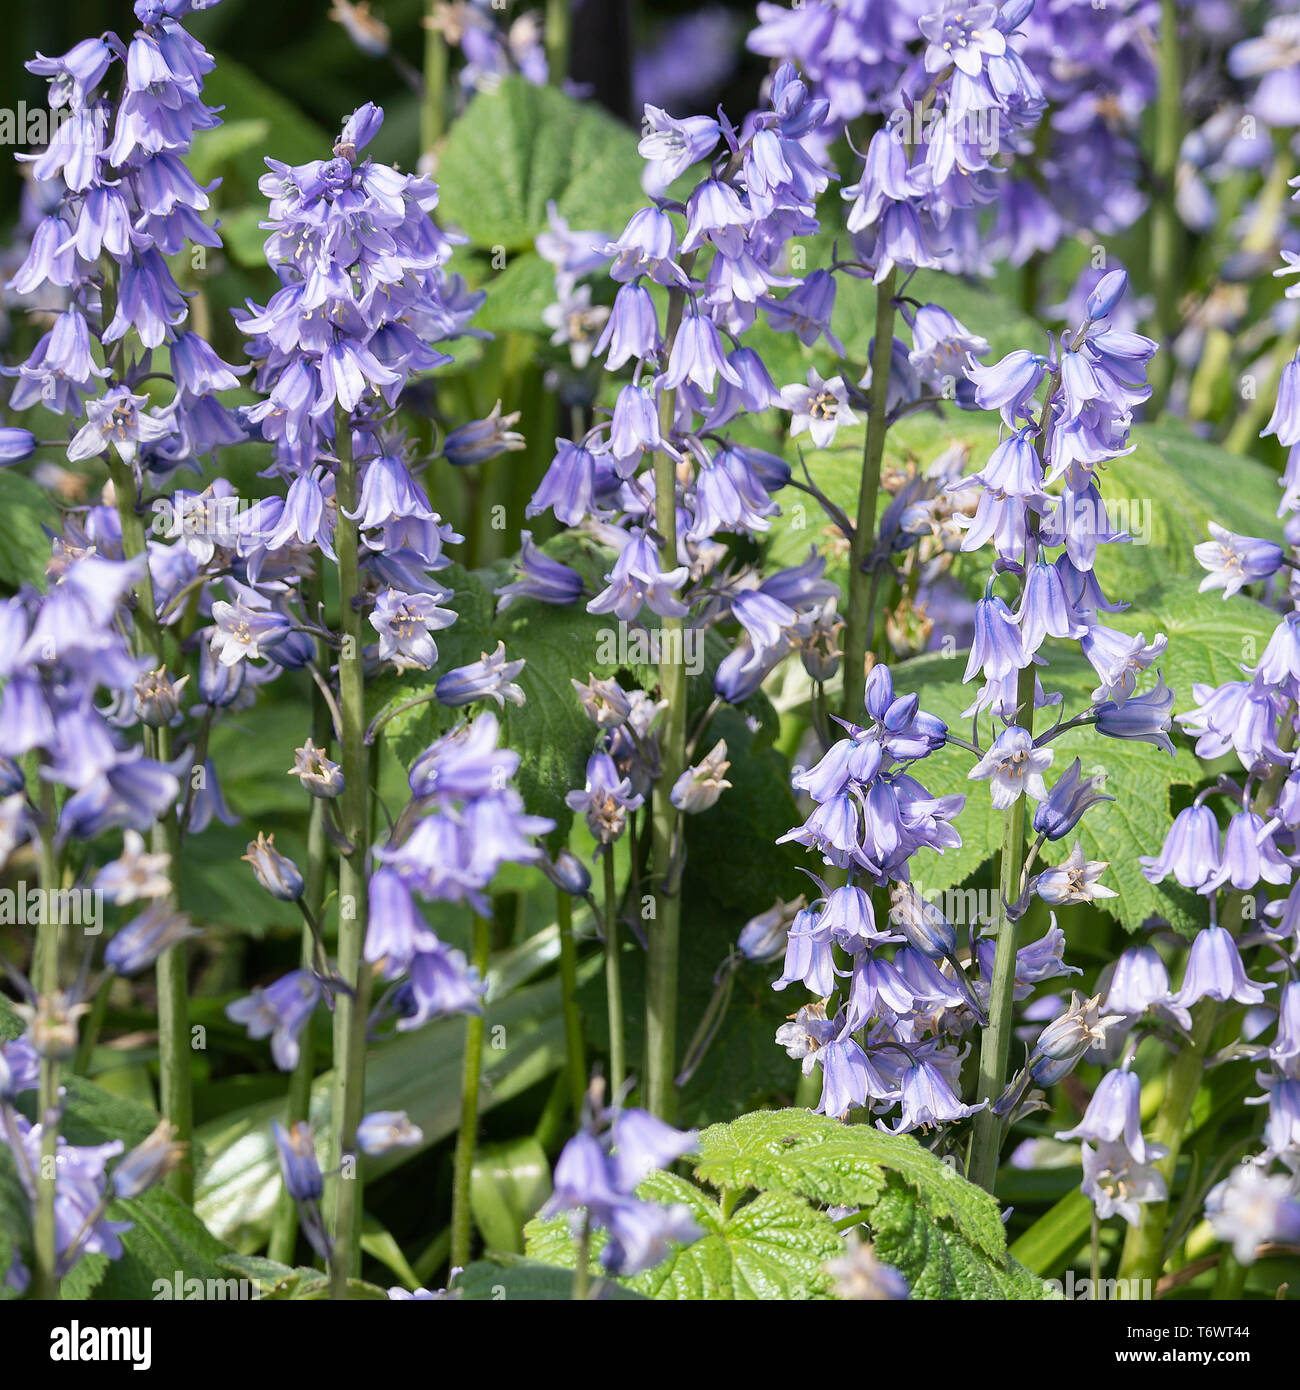 Clusters of Spanish Bluebell Flowers in Full Bloom in a Garden in Alsager Cheshire England United Kingdom UK - Stock Image